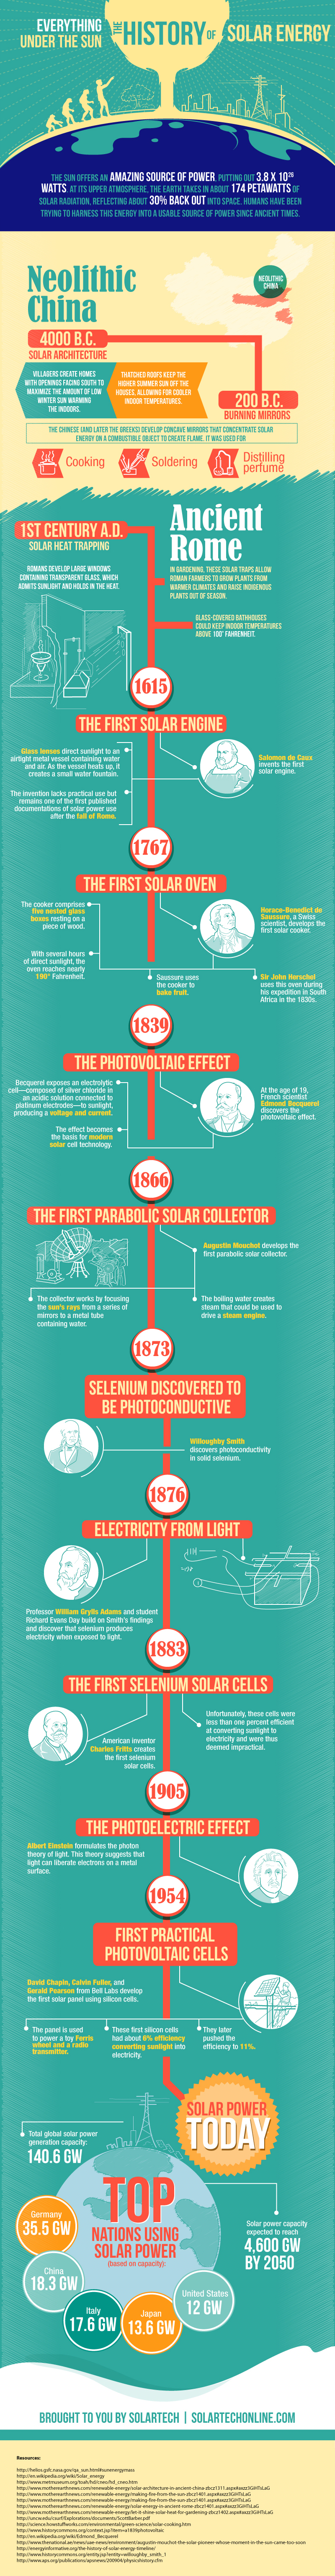 1410_graphic-solartech-solar power history